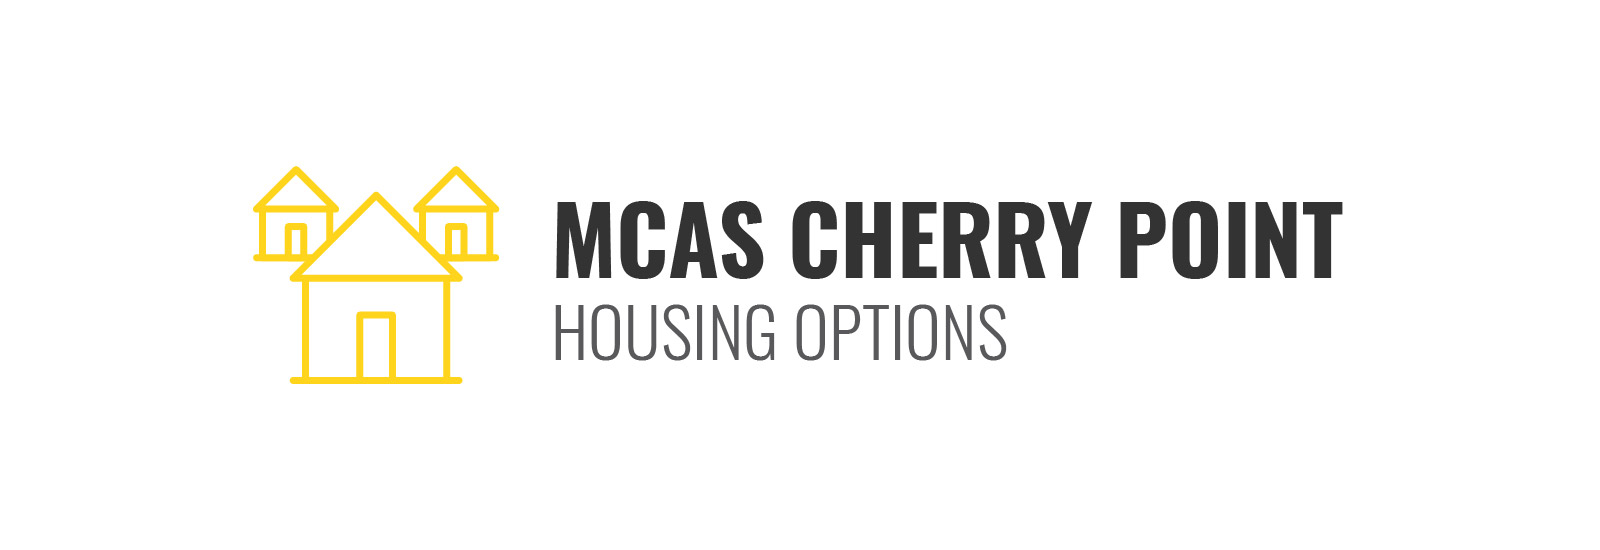 MCAS Cherry Point Housing Options